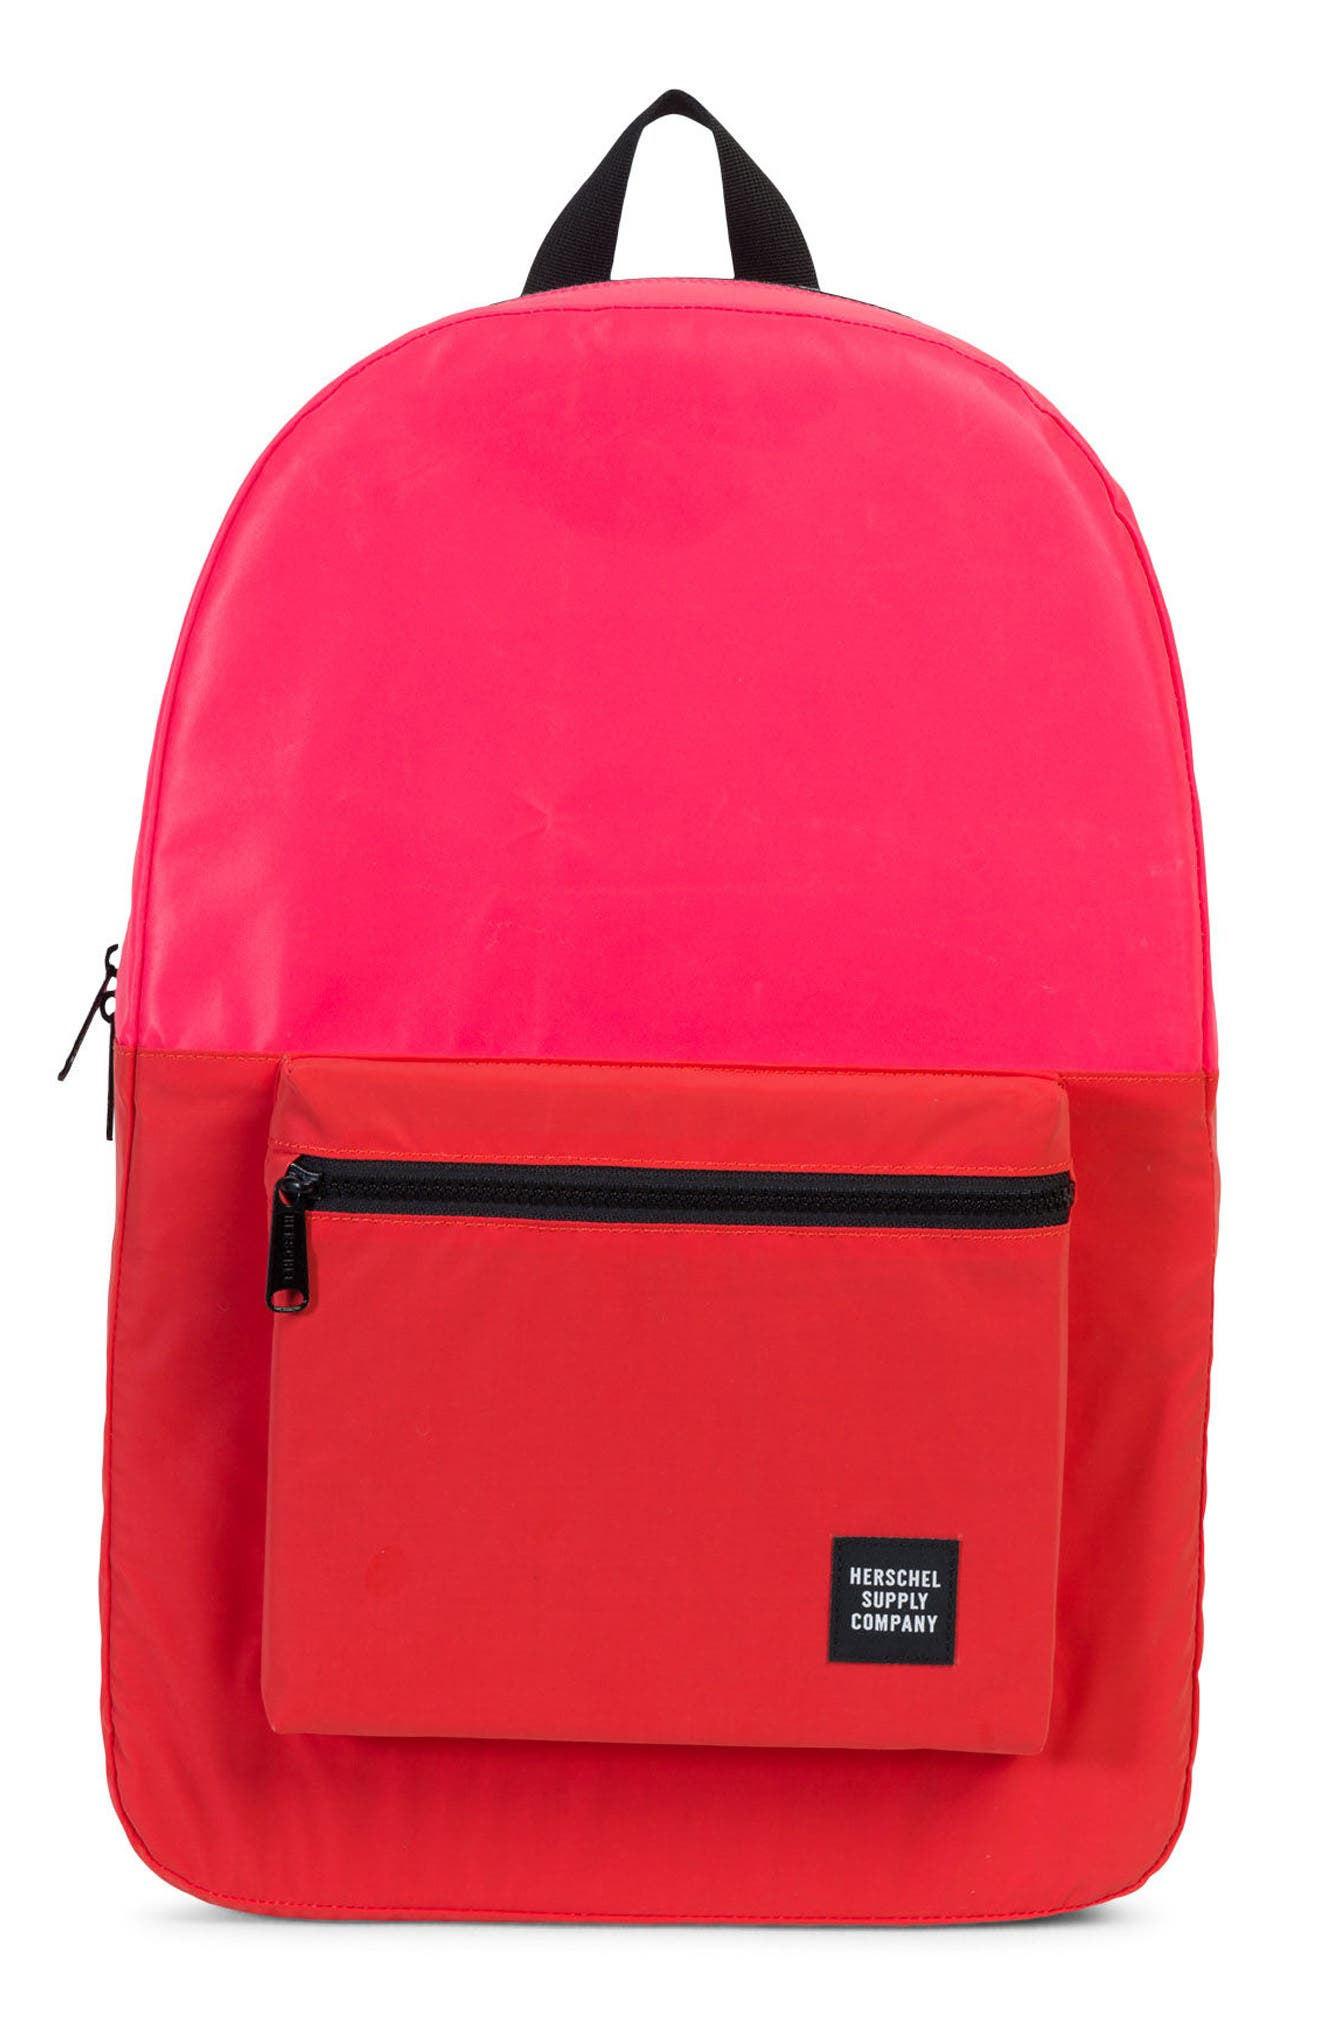 Heritage Reflective Backpack,                         Main,                         color, Neon Pink Reflective/ Red